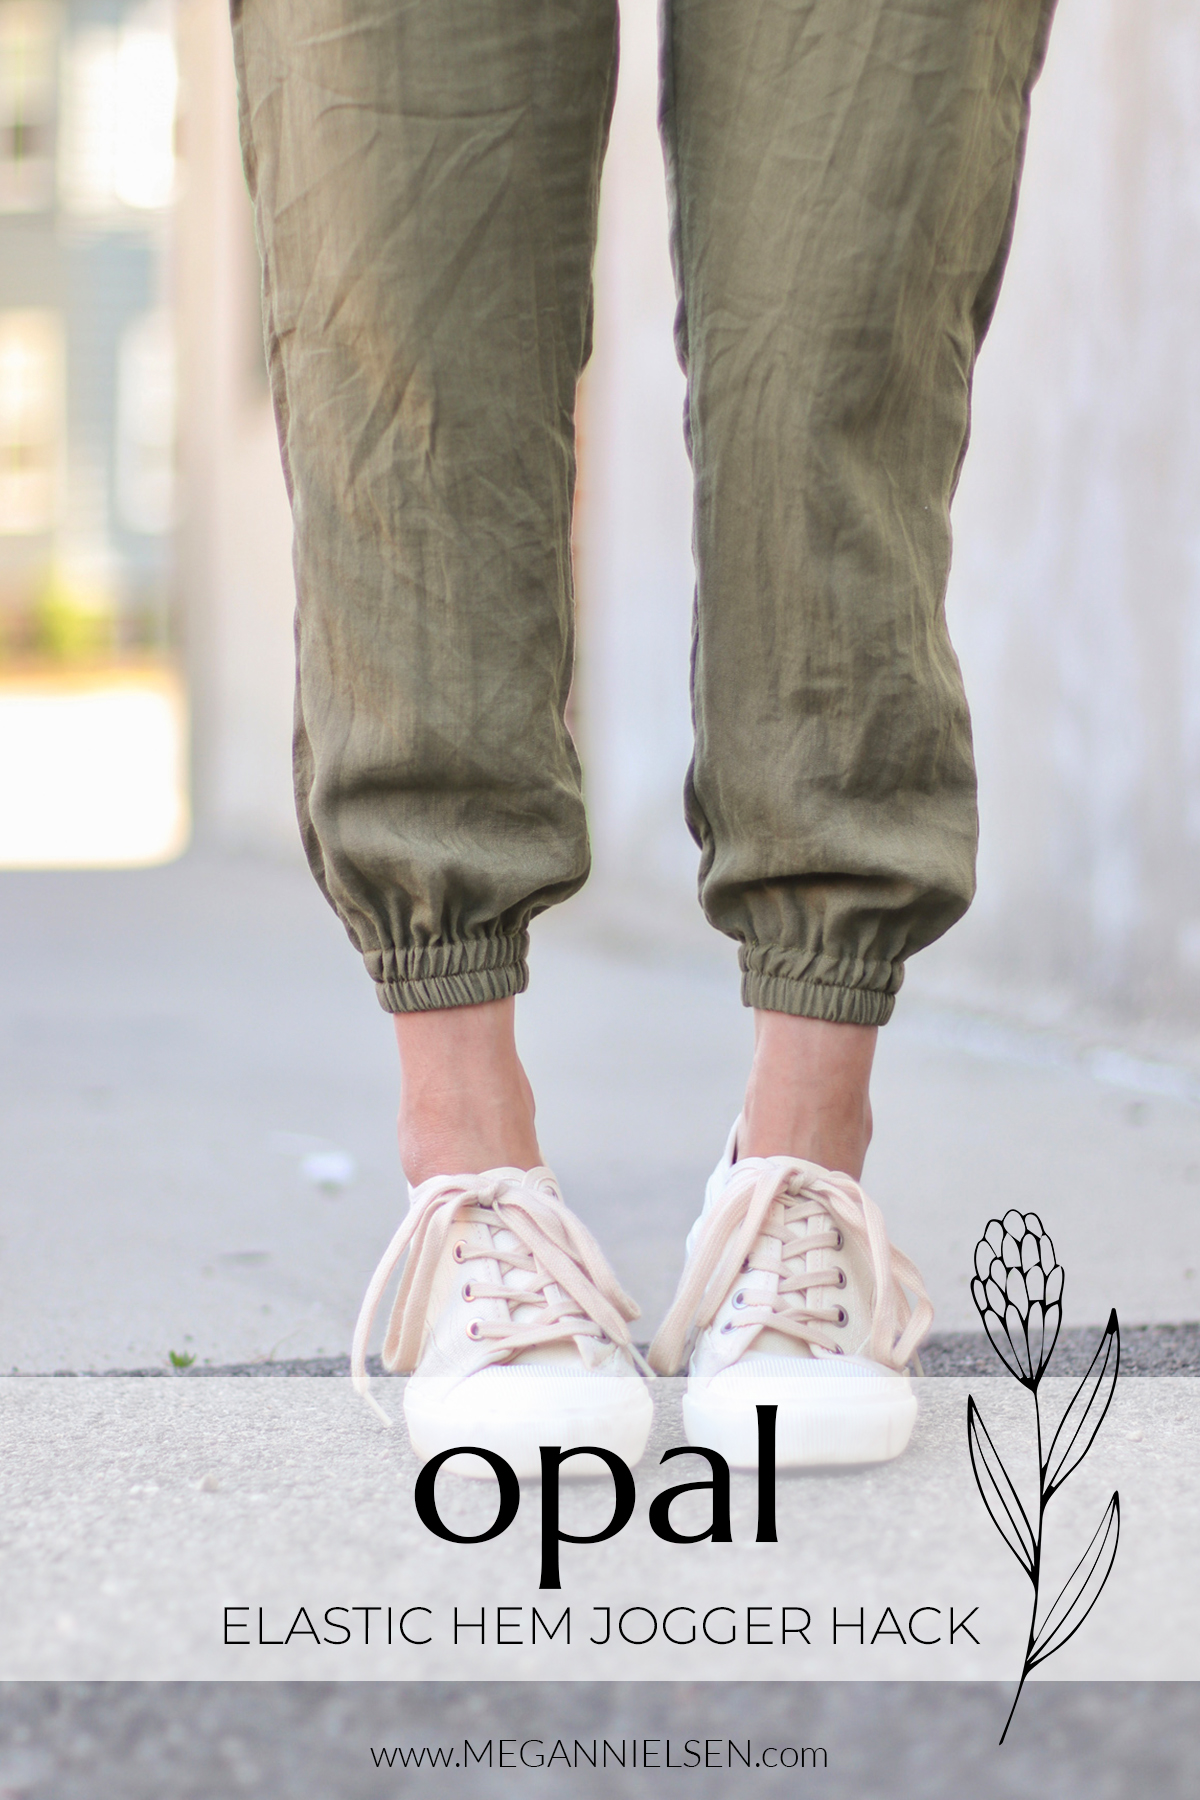 Elastic hem jogger hack for the Opal pants and shorts pattern